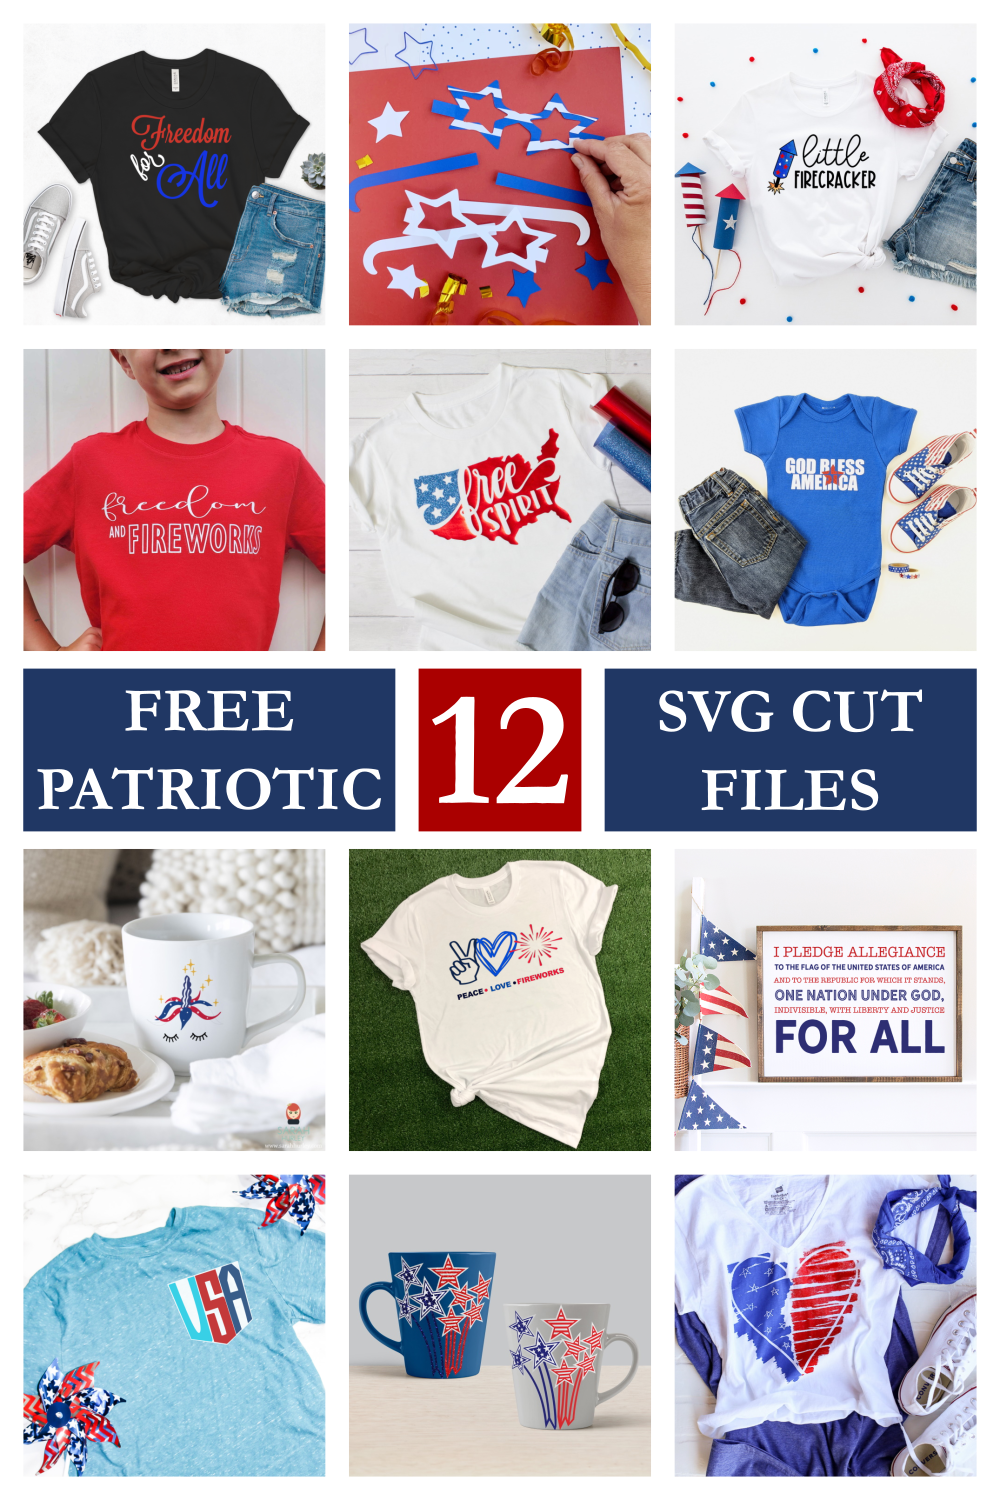 Patriotic cut files, free SVG files for the 4th of July, 4th of july cut files FREE, stars and stripes glasses, star glasses 4th of july